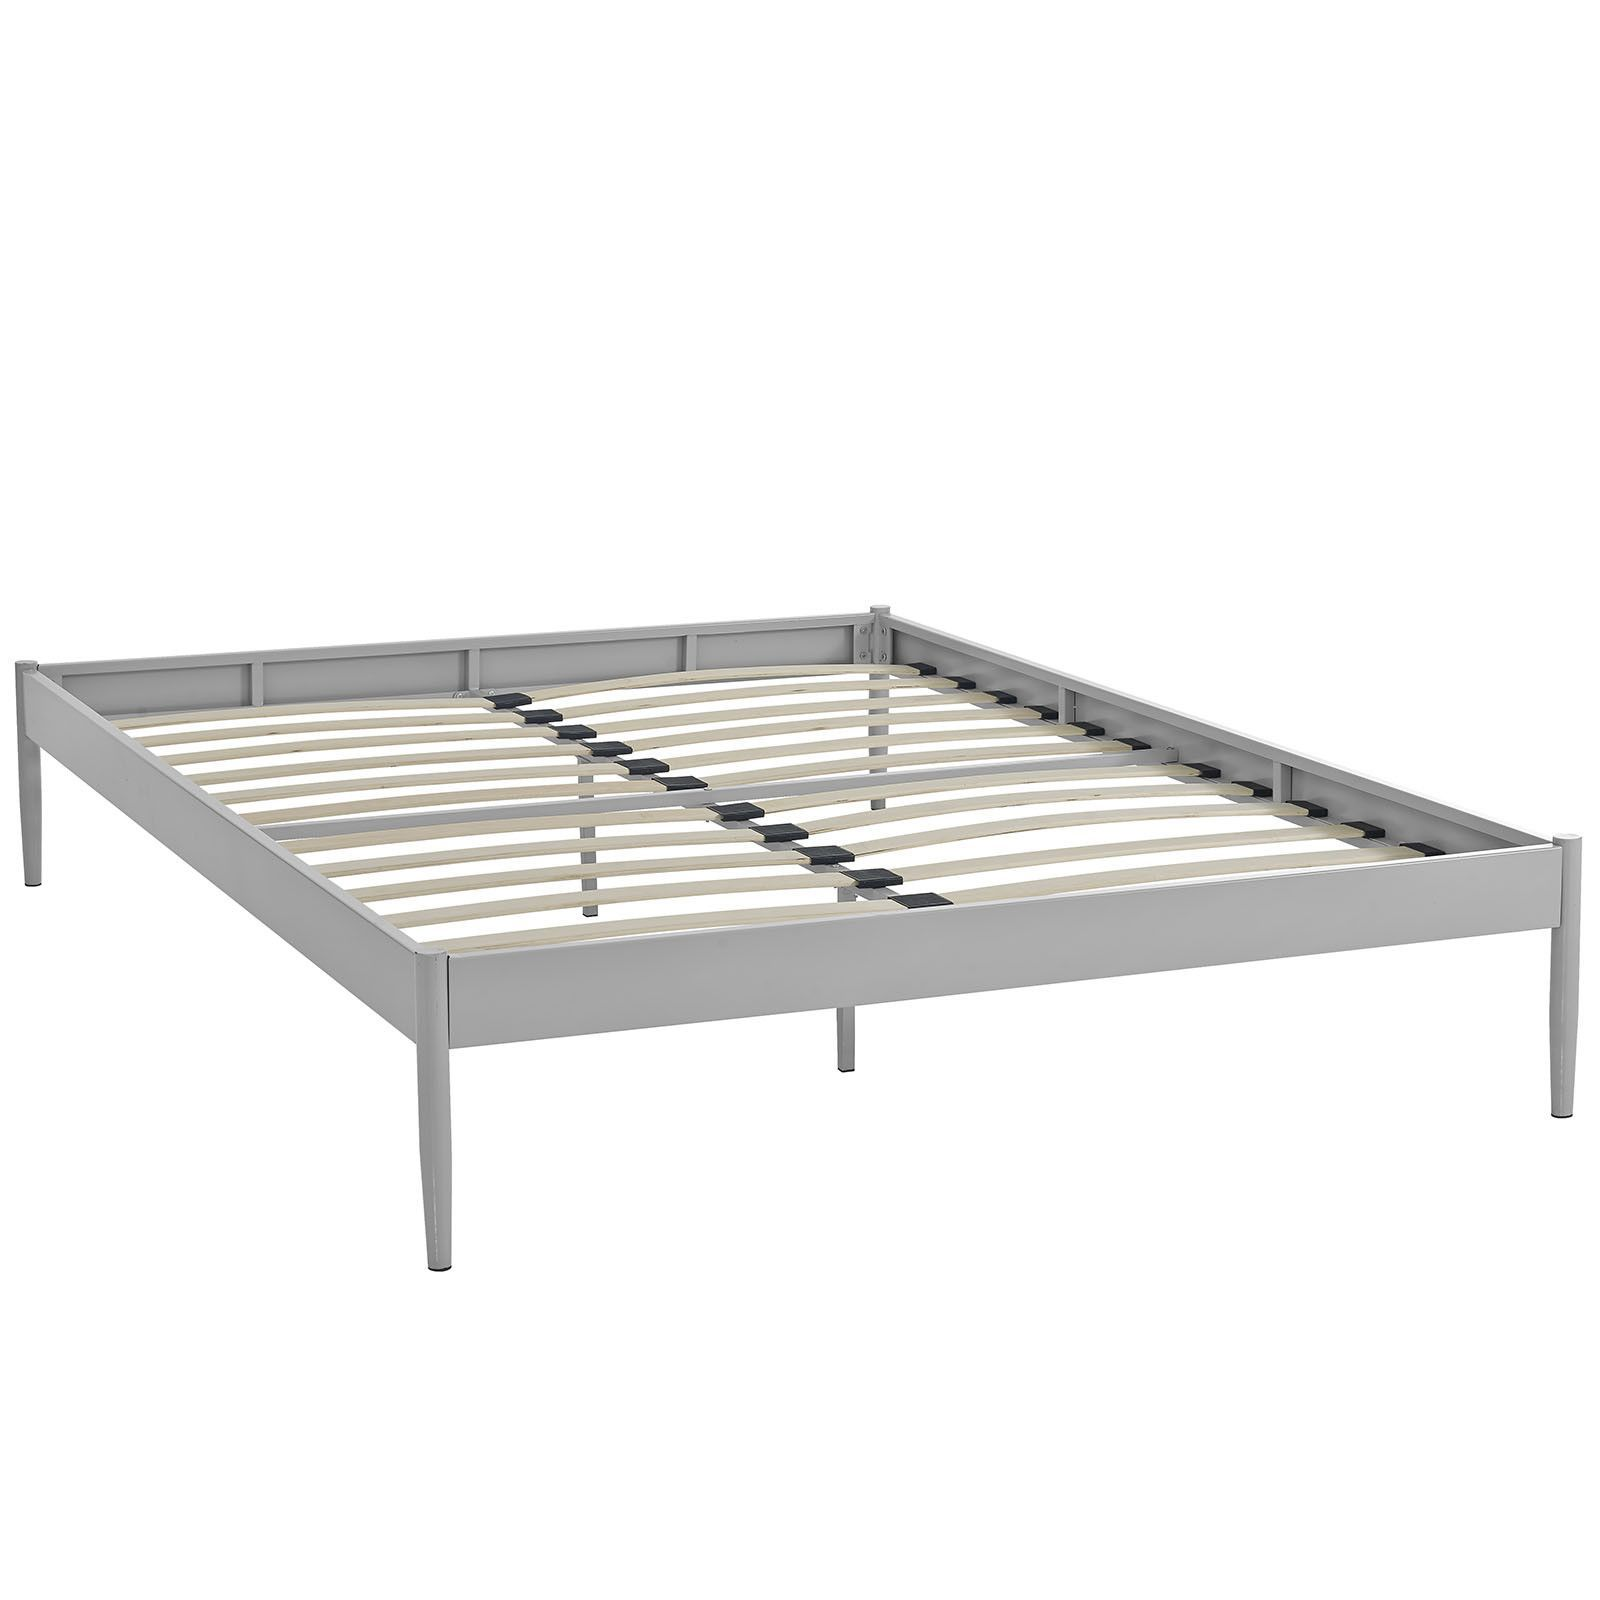 Elsie Full Bed Frame - Gray